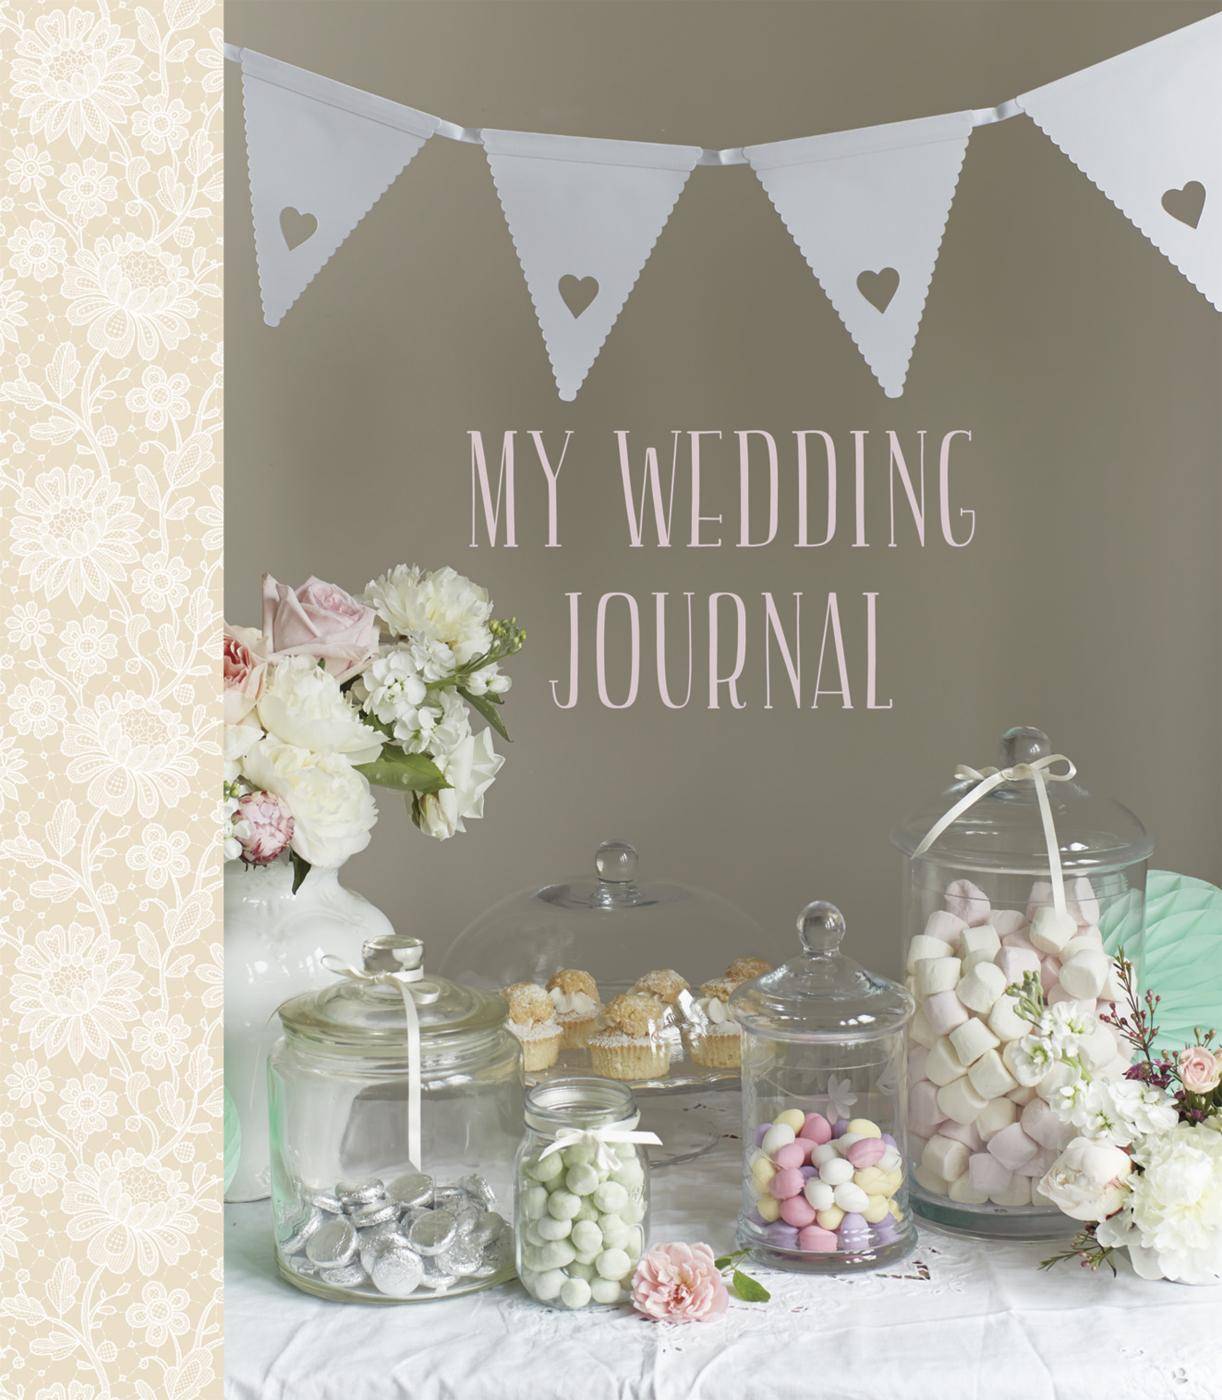 My Wedding Journal boxed set. ISBN: 9781849754477